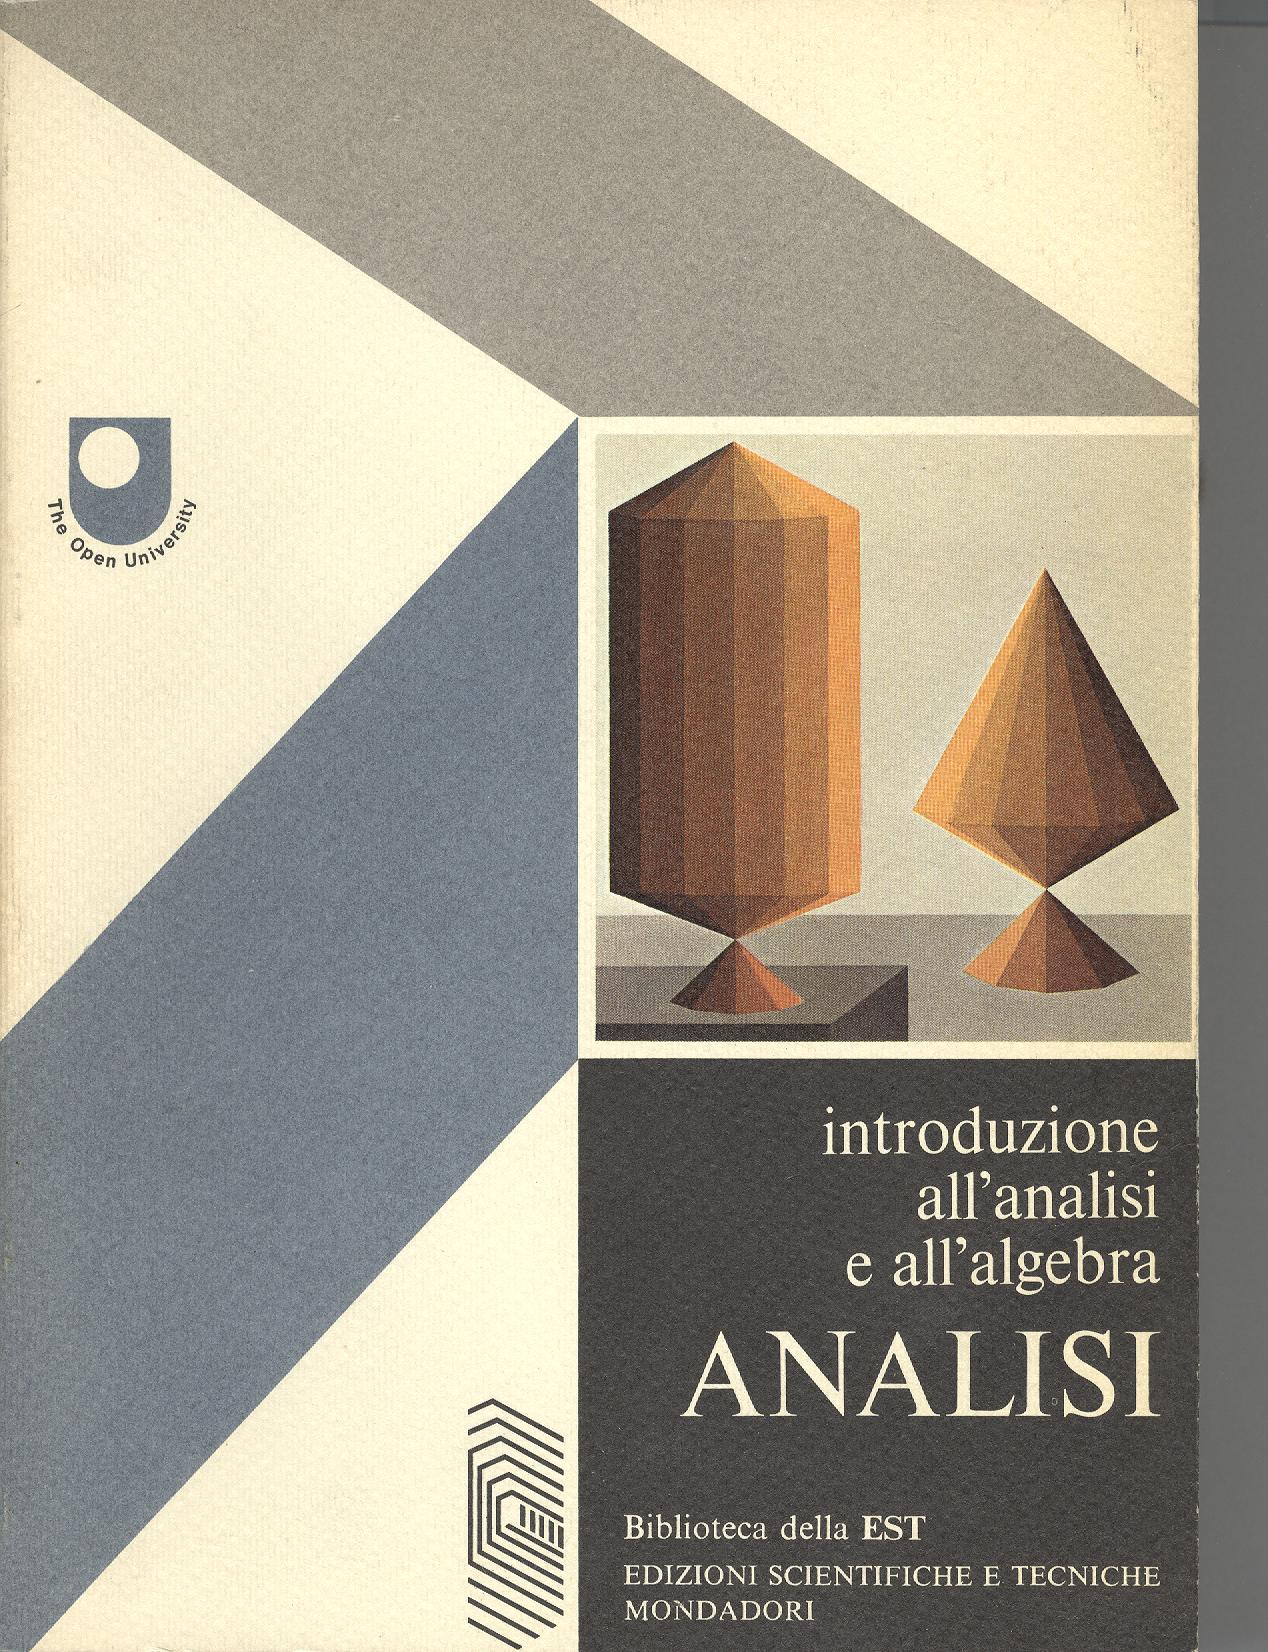 Introduzione all'analisi e all'algebra